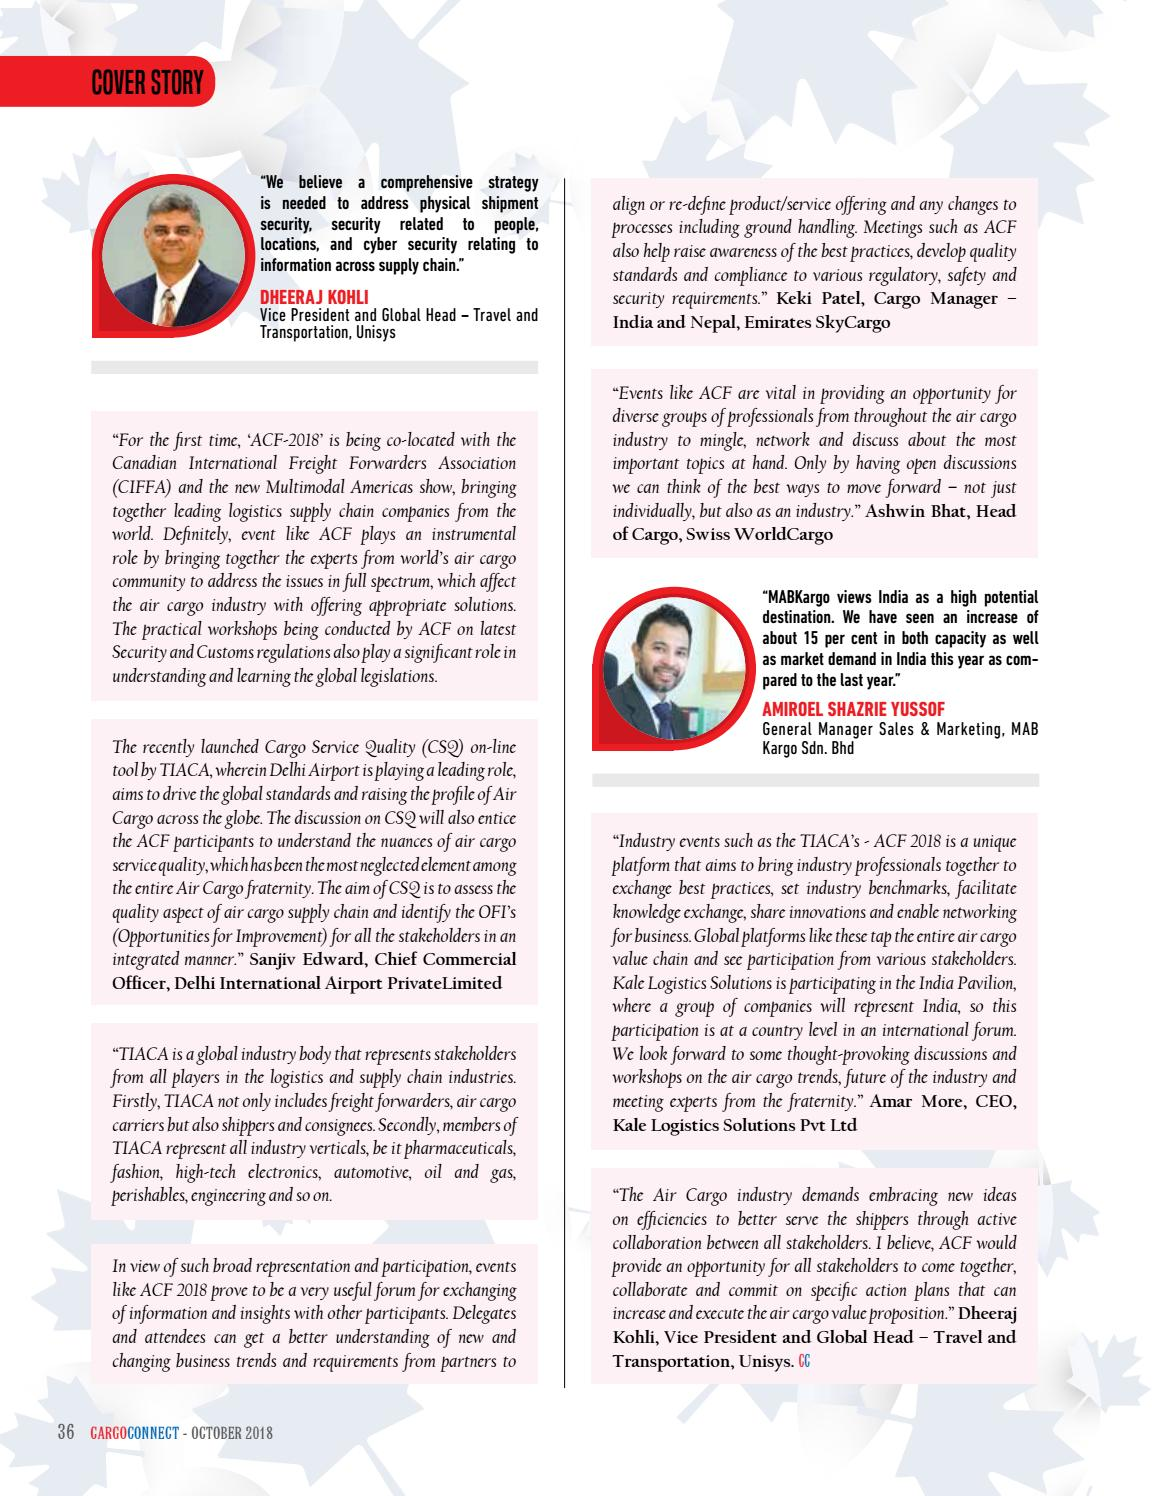 Cargoconnect October Issue 2018 By Surecom Media Issuu